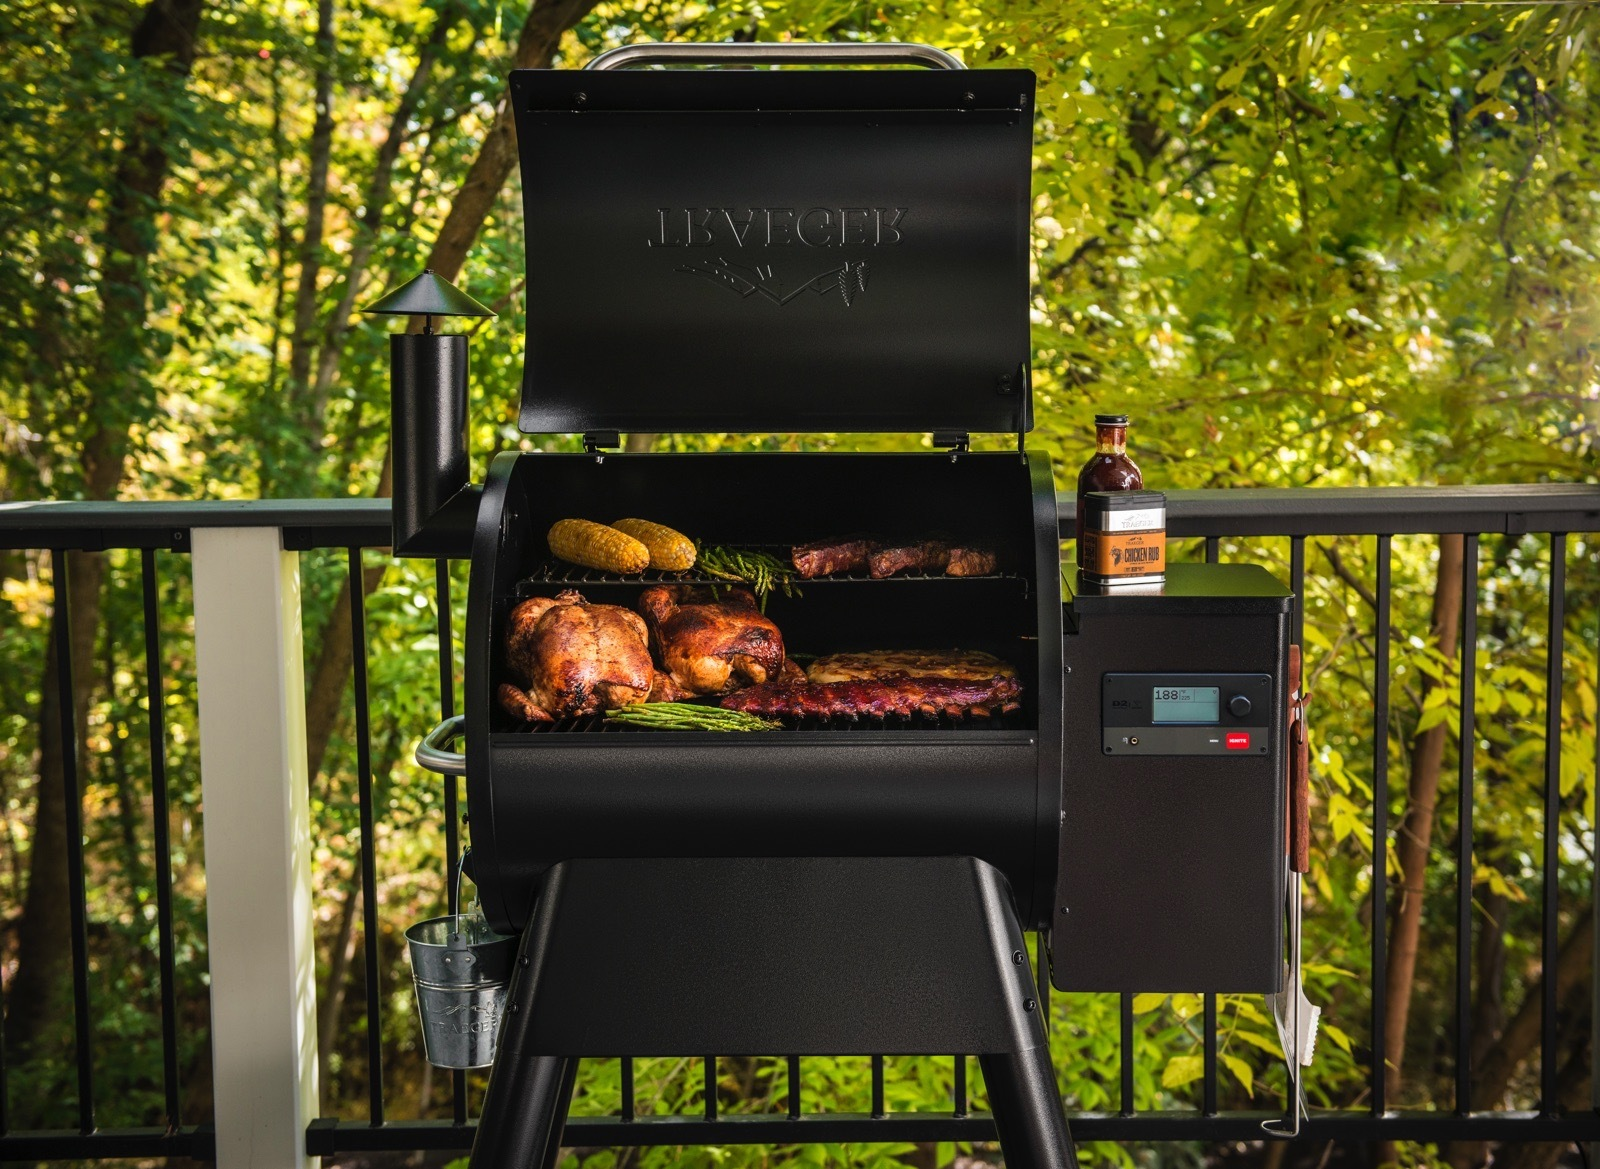 Traeger Is Integrating Wi Fi Into Grills In Ways That